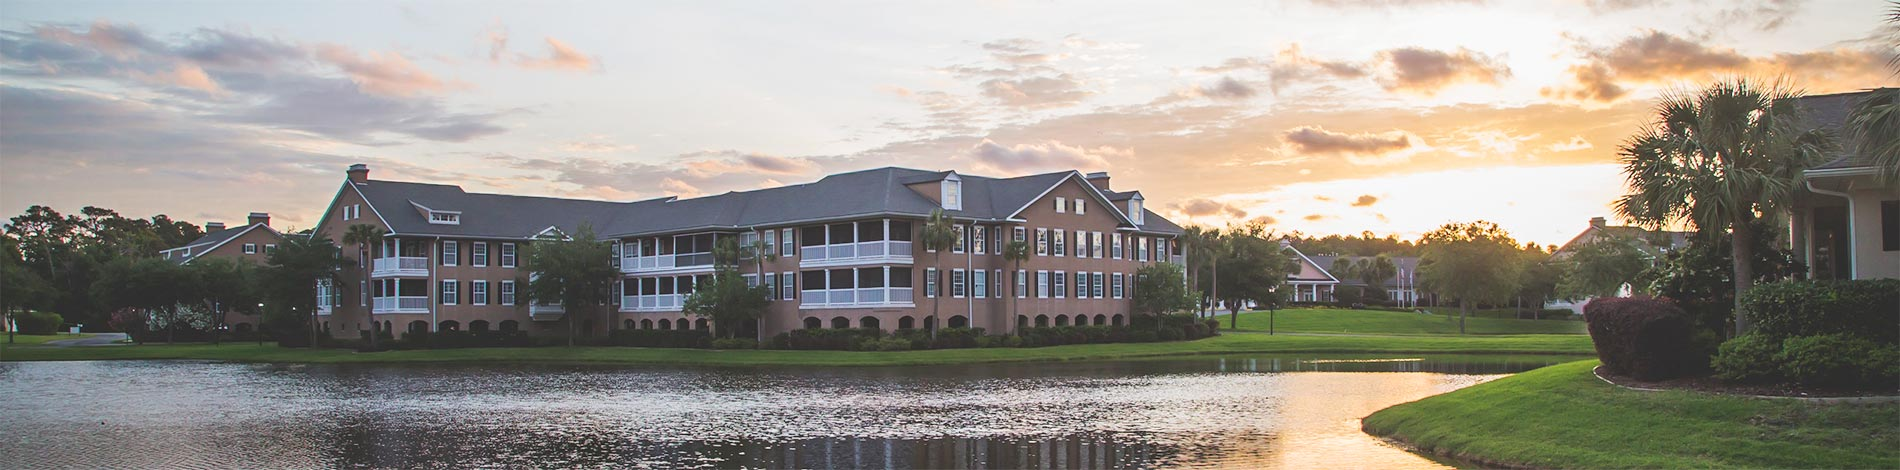 St. Simons Island Independent Living Retirement